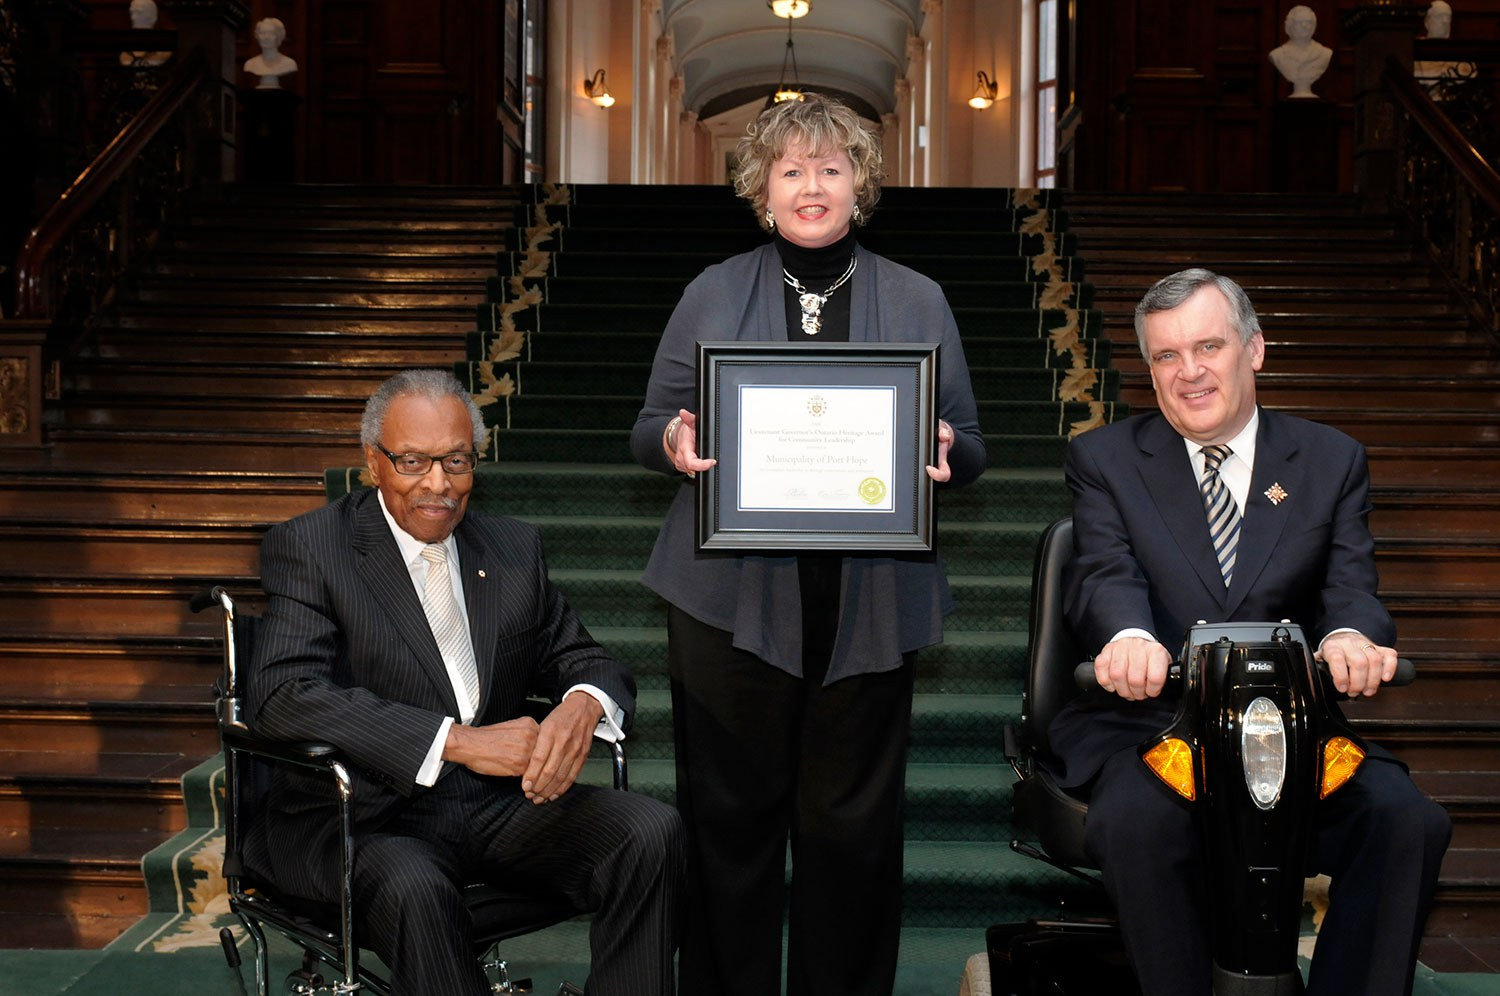 Port Hope was a recipient of a Community Leadership Award in 2008. The award was presented to Councillor Karen O'Hara by Lincoln M. Alexander, former Chairman of the Ontario Heritage Trust, and David C. Onley, Ontario's Lieutenant Governor. (Photo: Tessa J. Buchan)